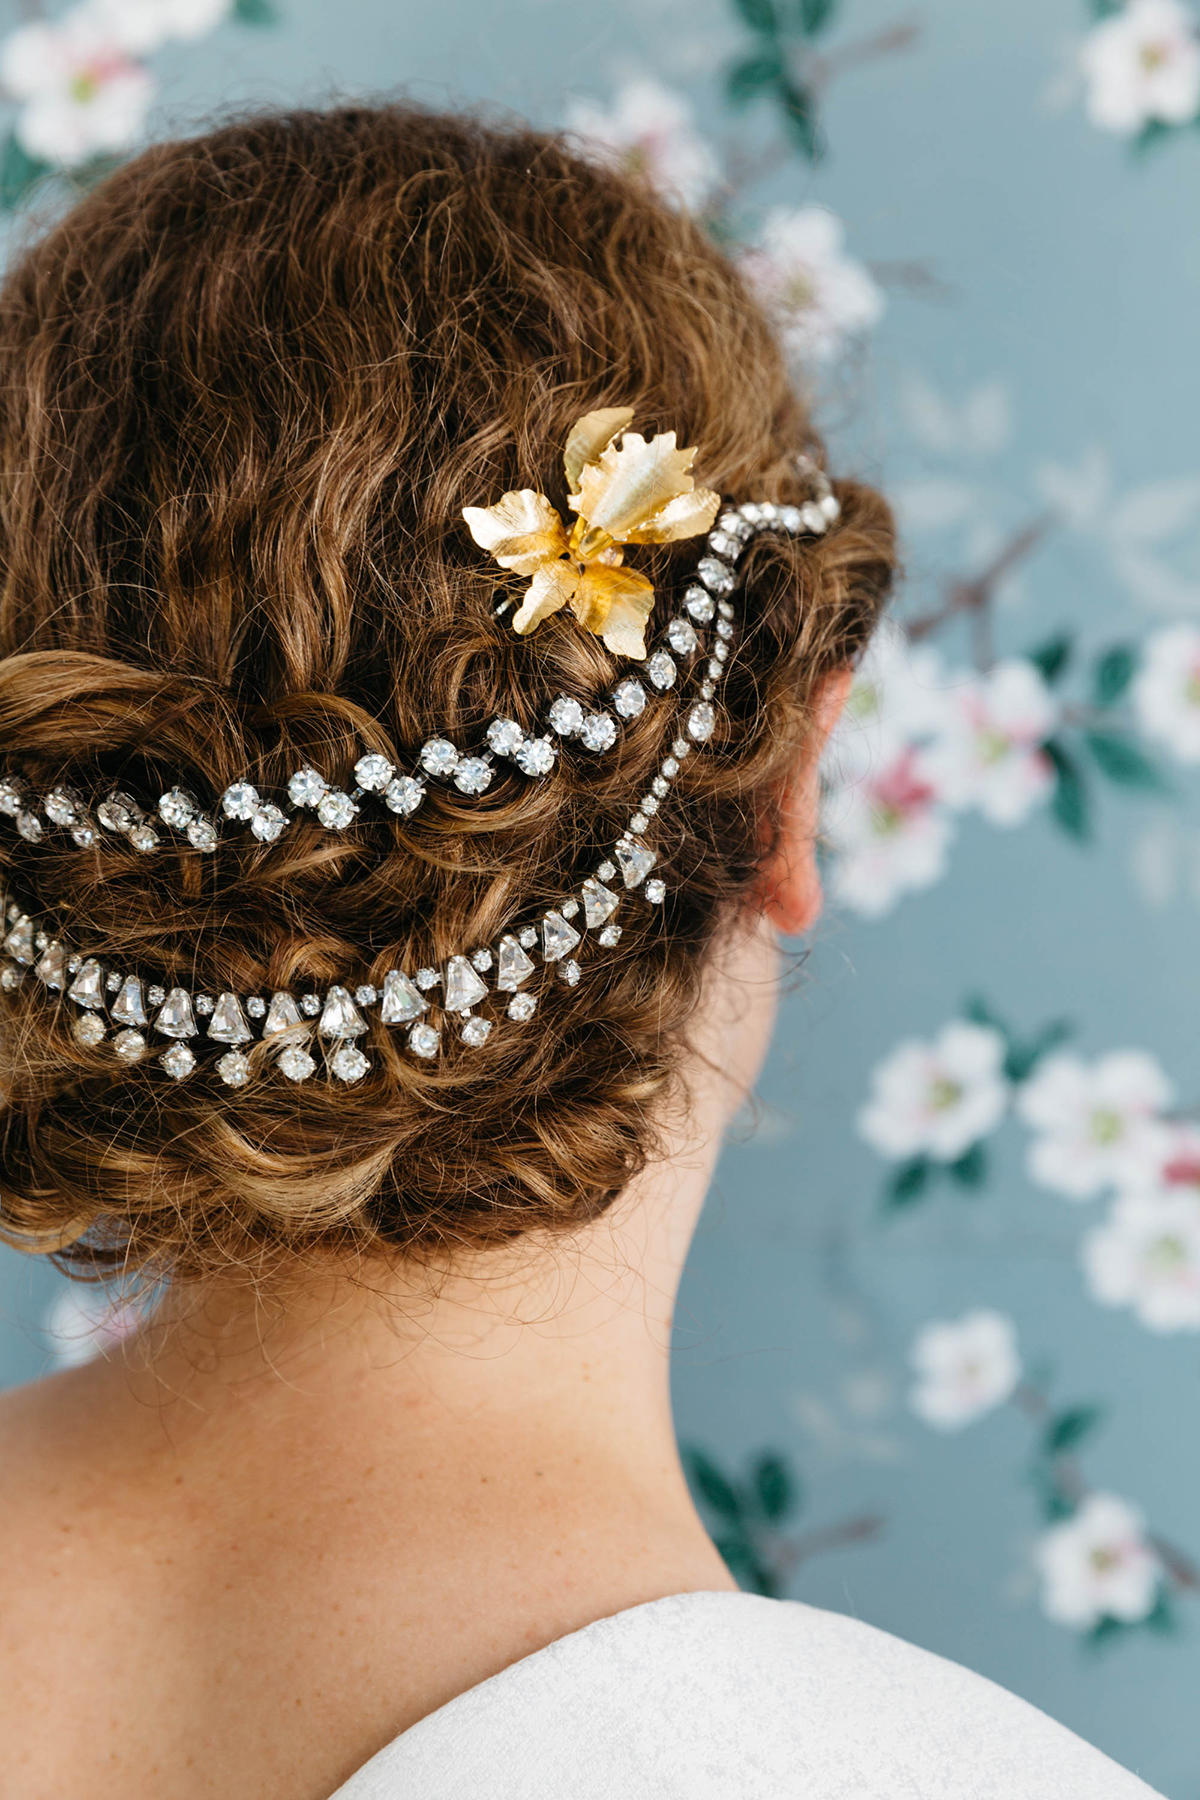 diy hair accessories with vintage jewelry – honestly wtf